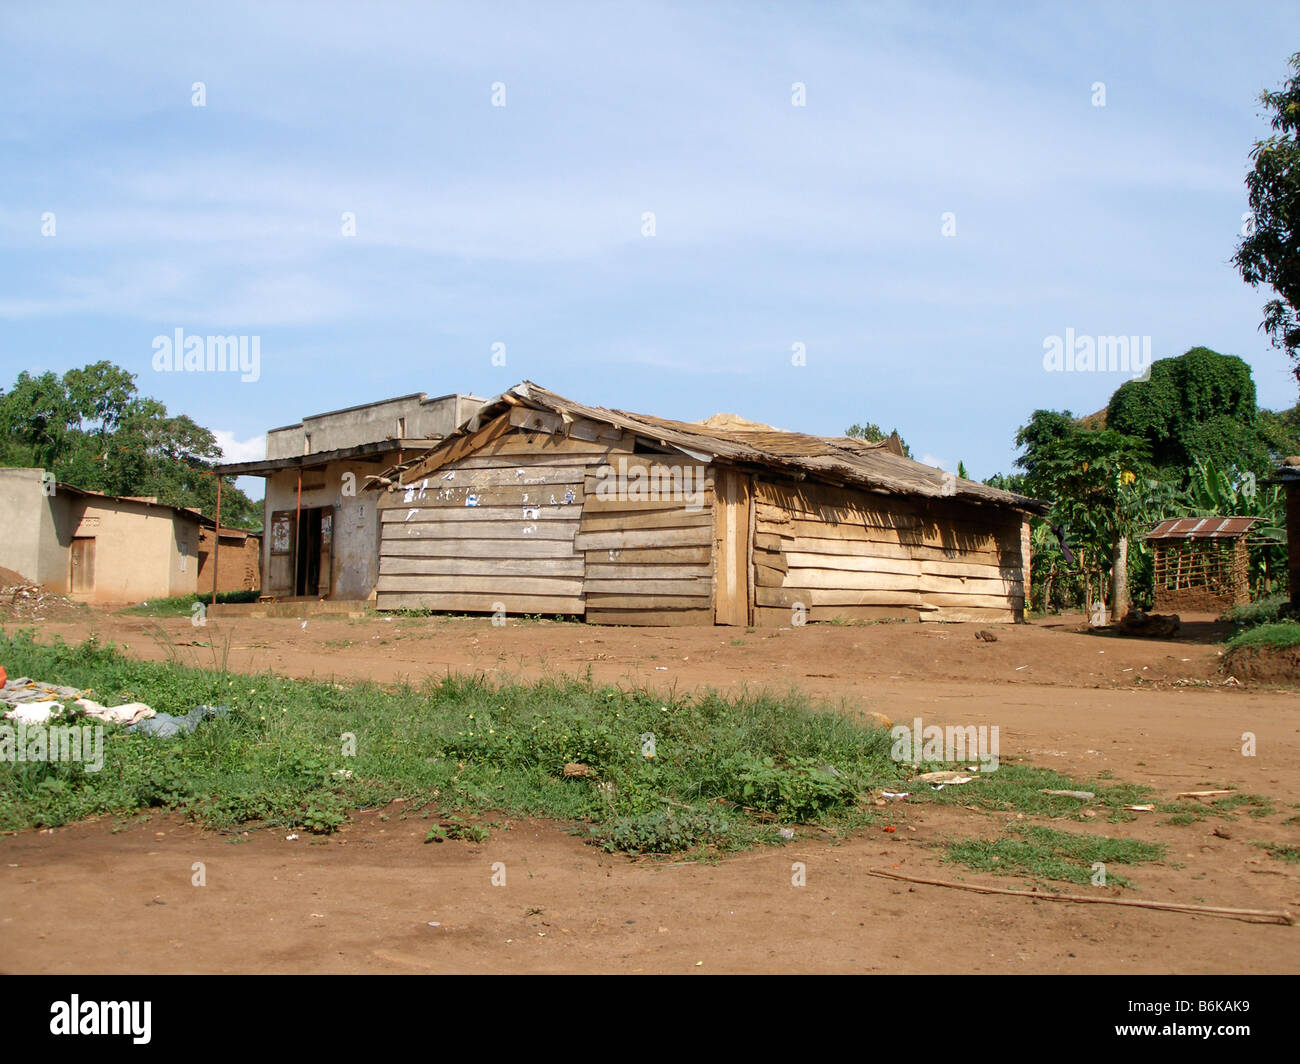 A makeshift local born again pentecostal church in a rural area of Uganda - Stock Image